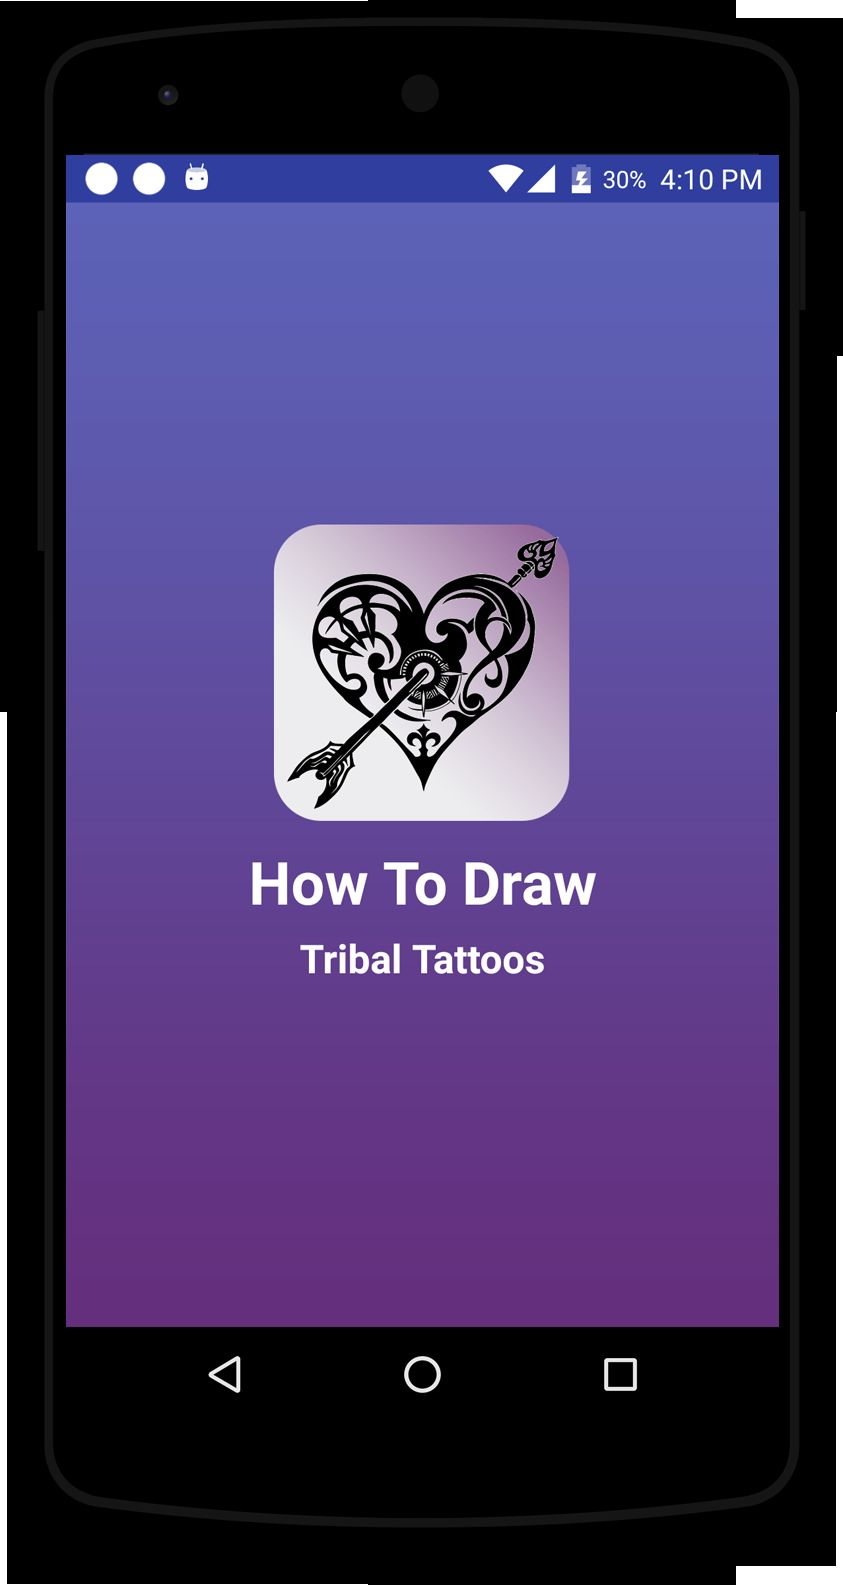 How To Draw Tribal Tattoos - Android Source Code Screenshot 1